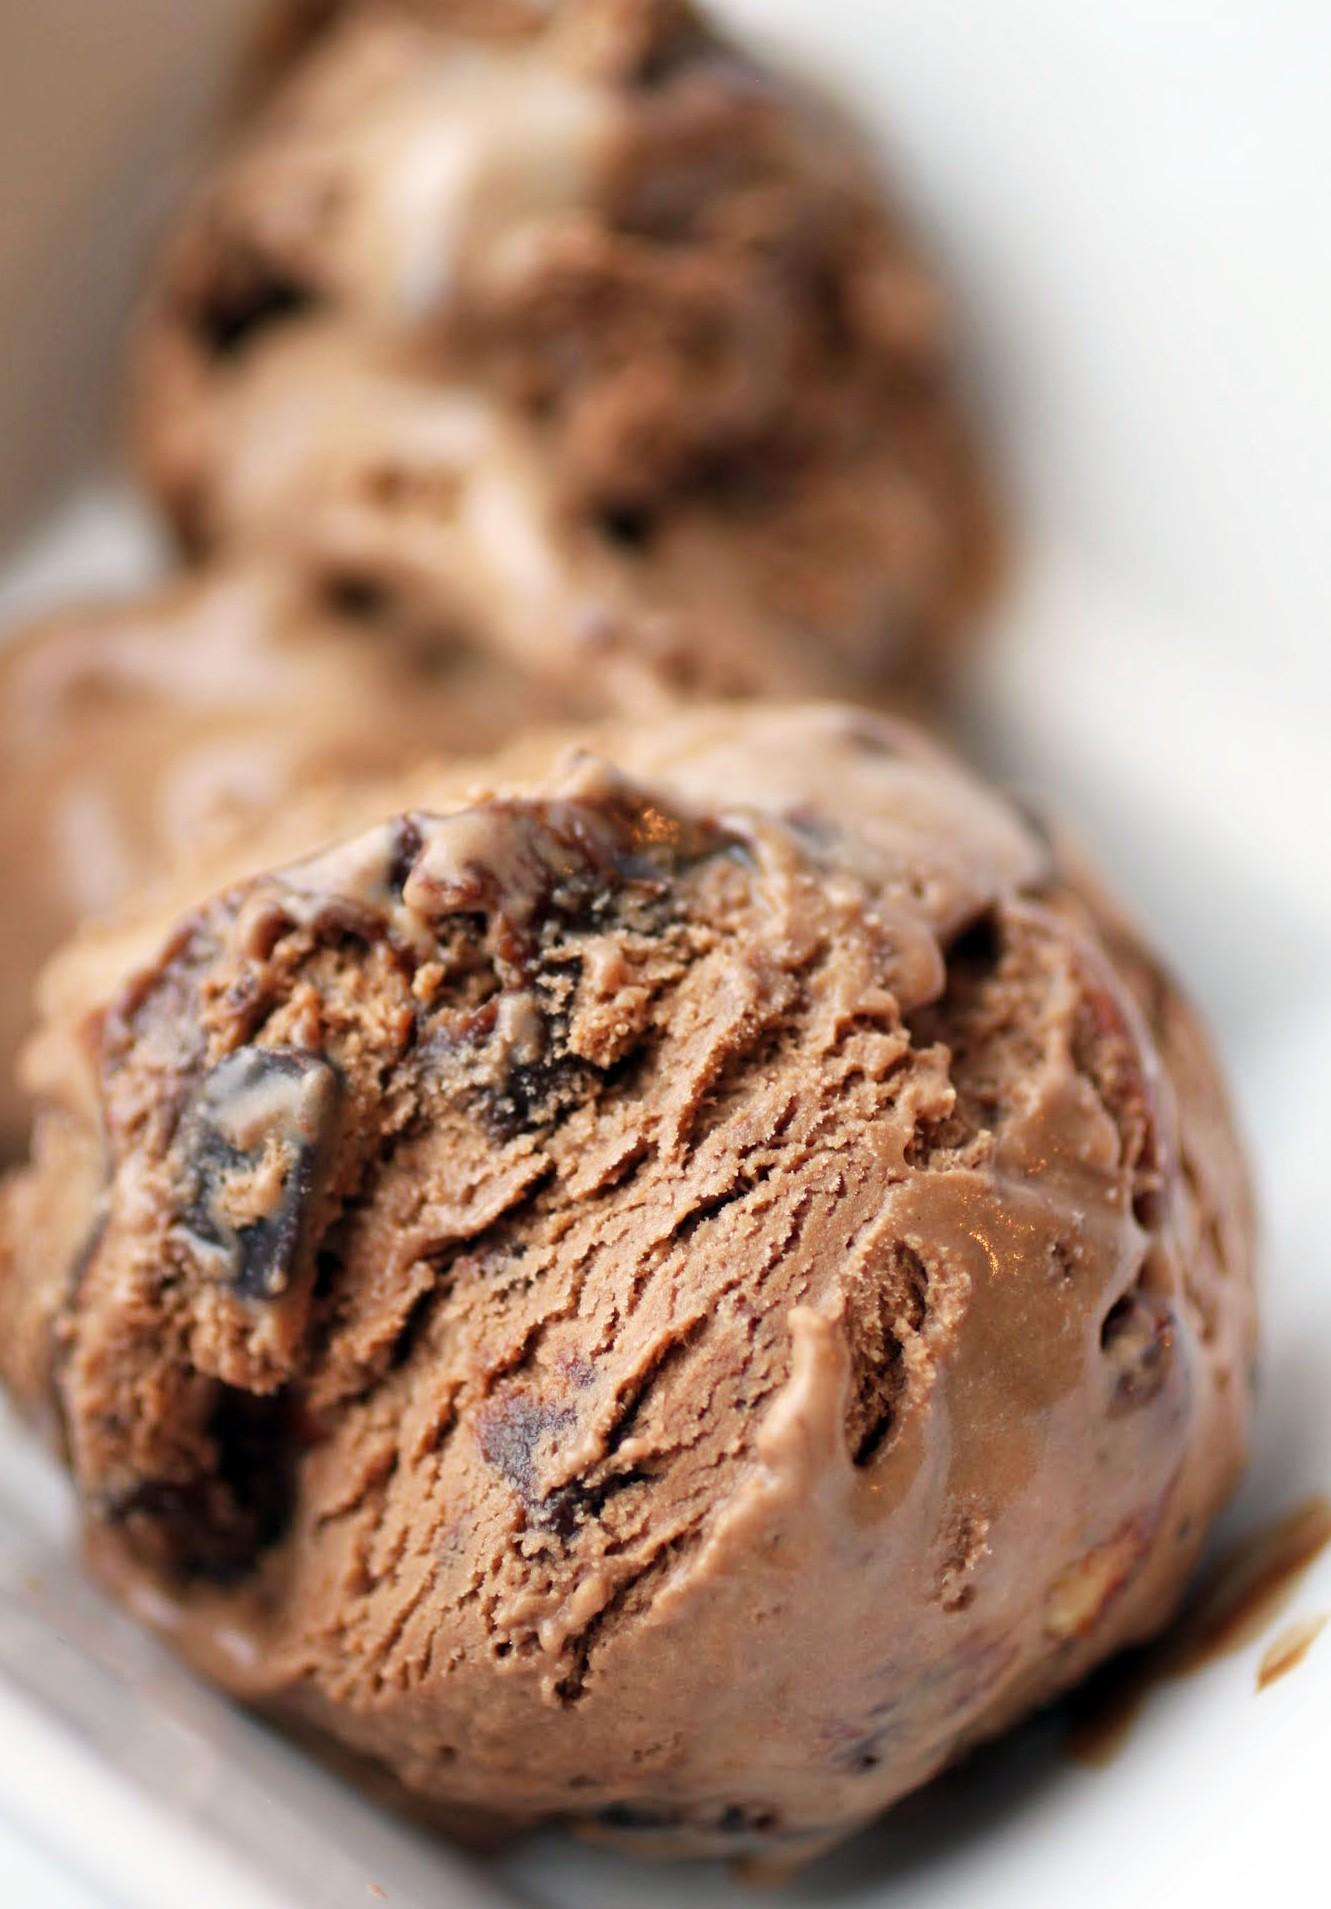 Mocha Almond Fudge Chunk Ice Cream (Plus A Giveaway!)